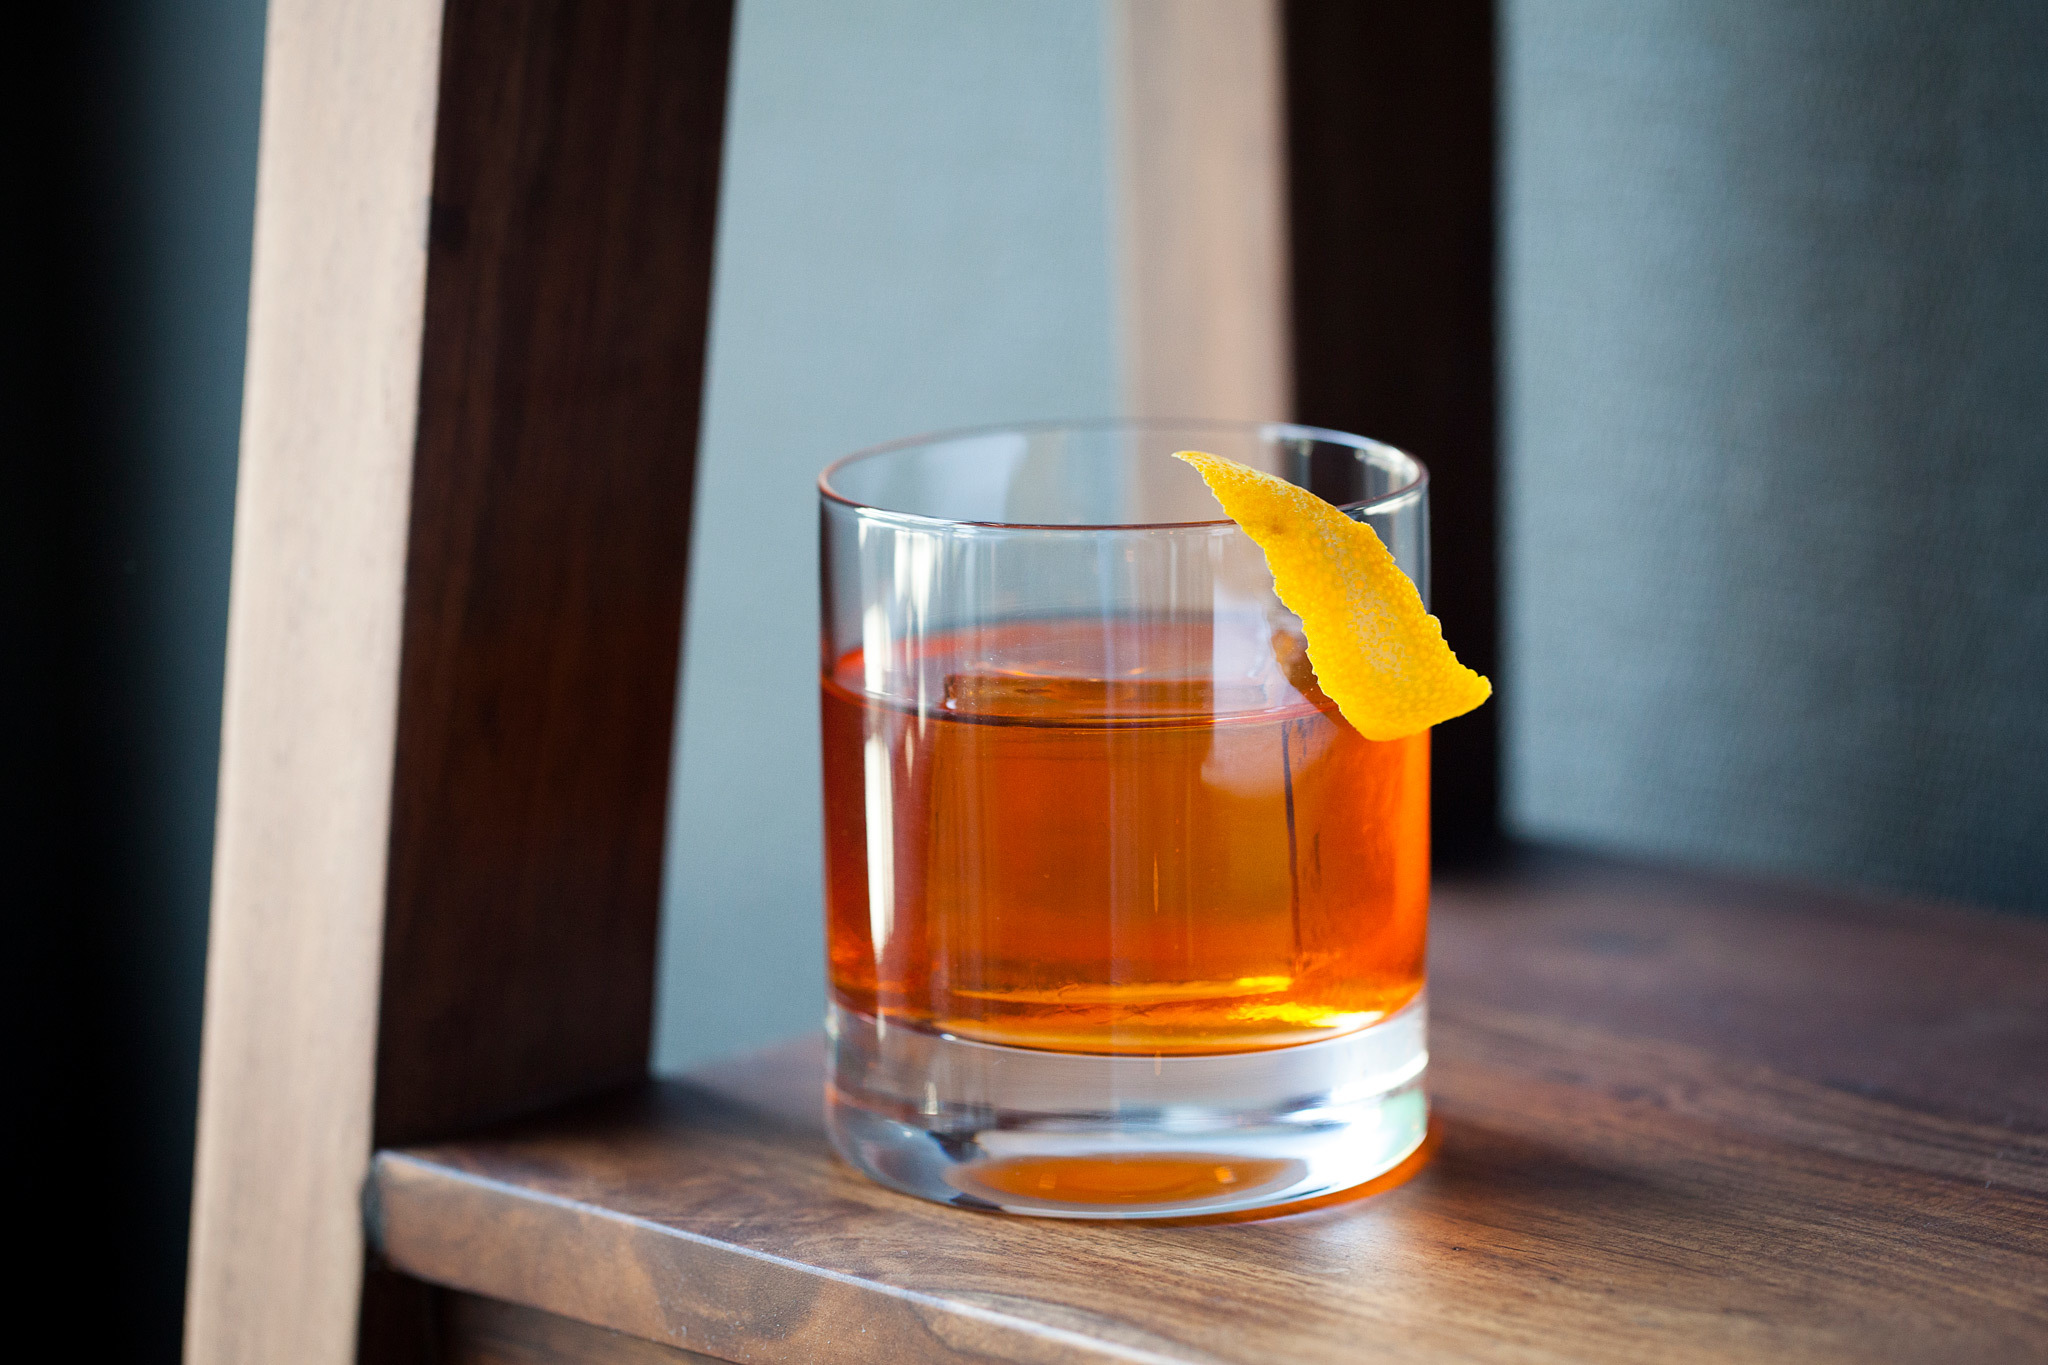 Smokey Negroni at Baldoria